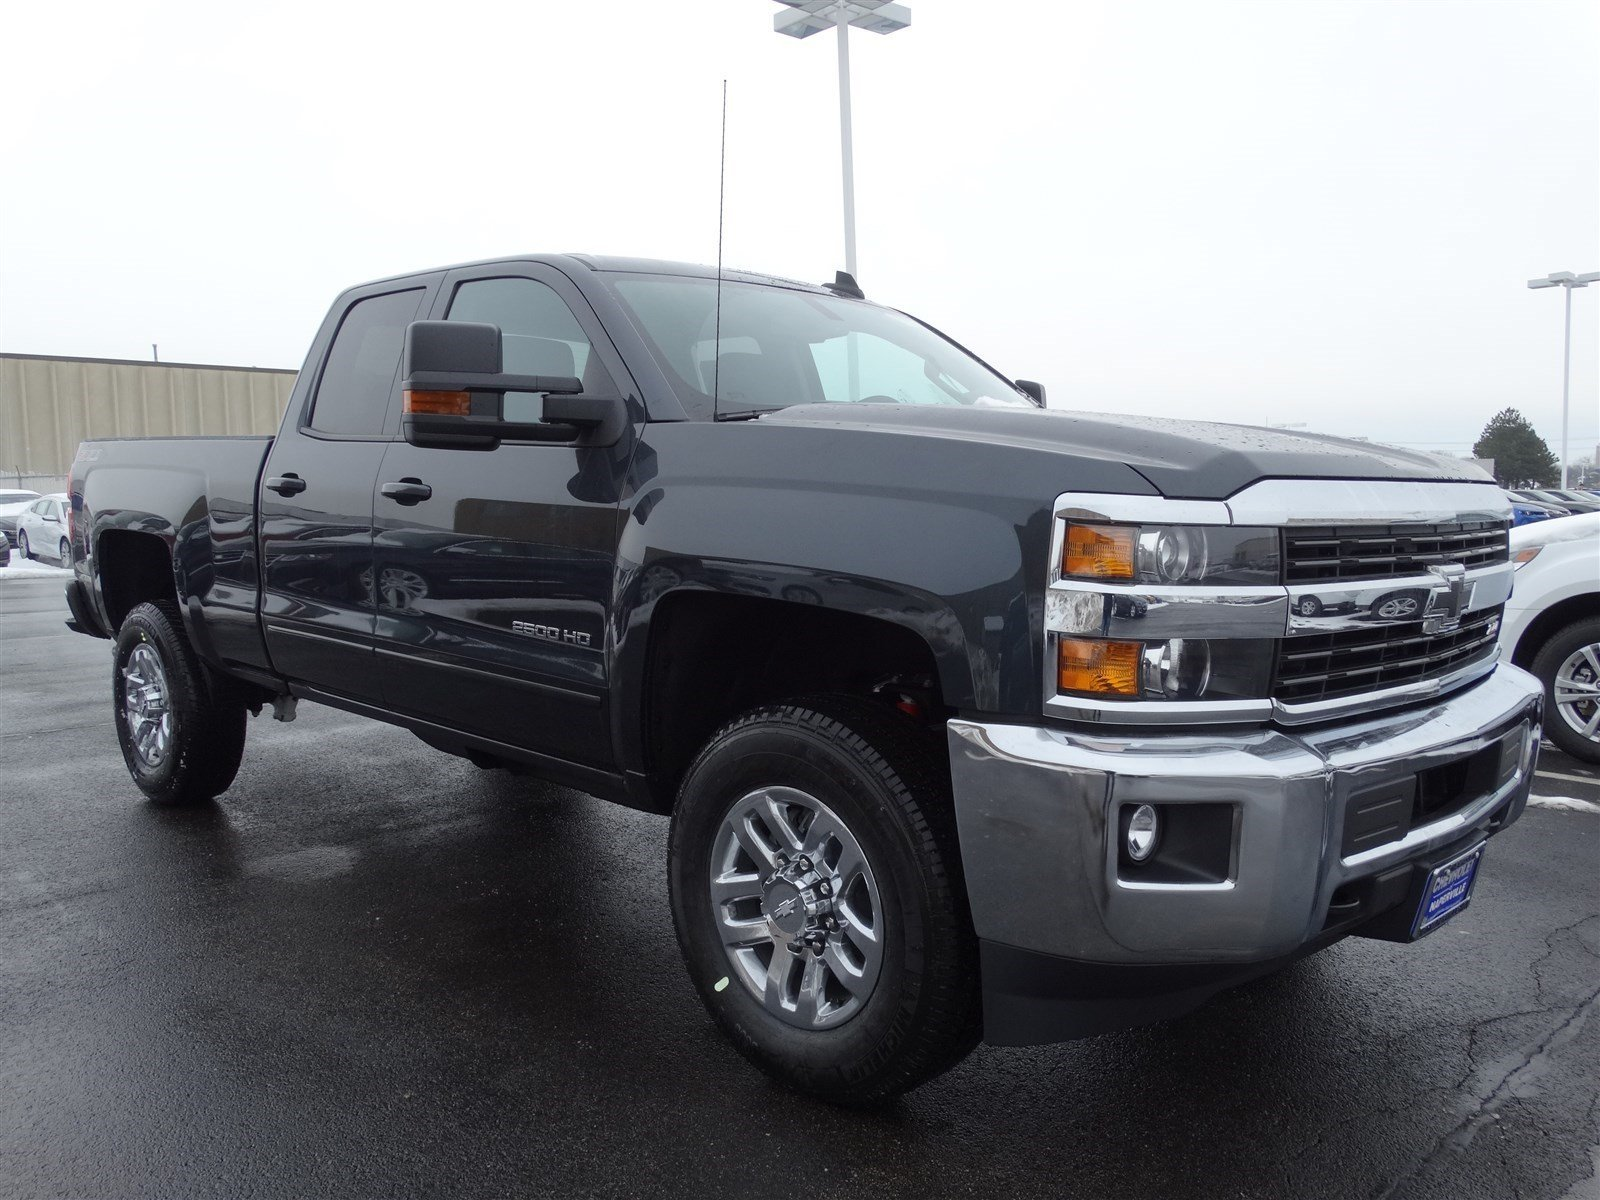 new 2017 chevrolet silverado 2500hd lt extended cab pickup in naperville t5998 chevrolet of. Black Bedroom Furniture Sets. Home Design Ideas